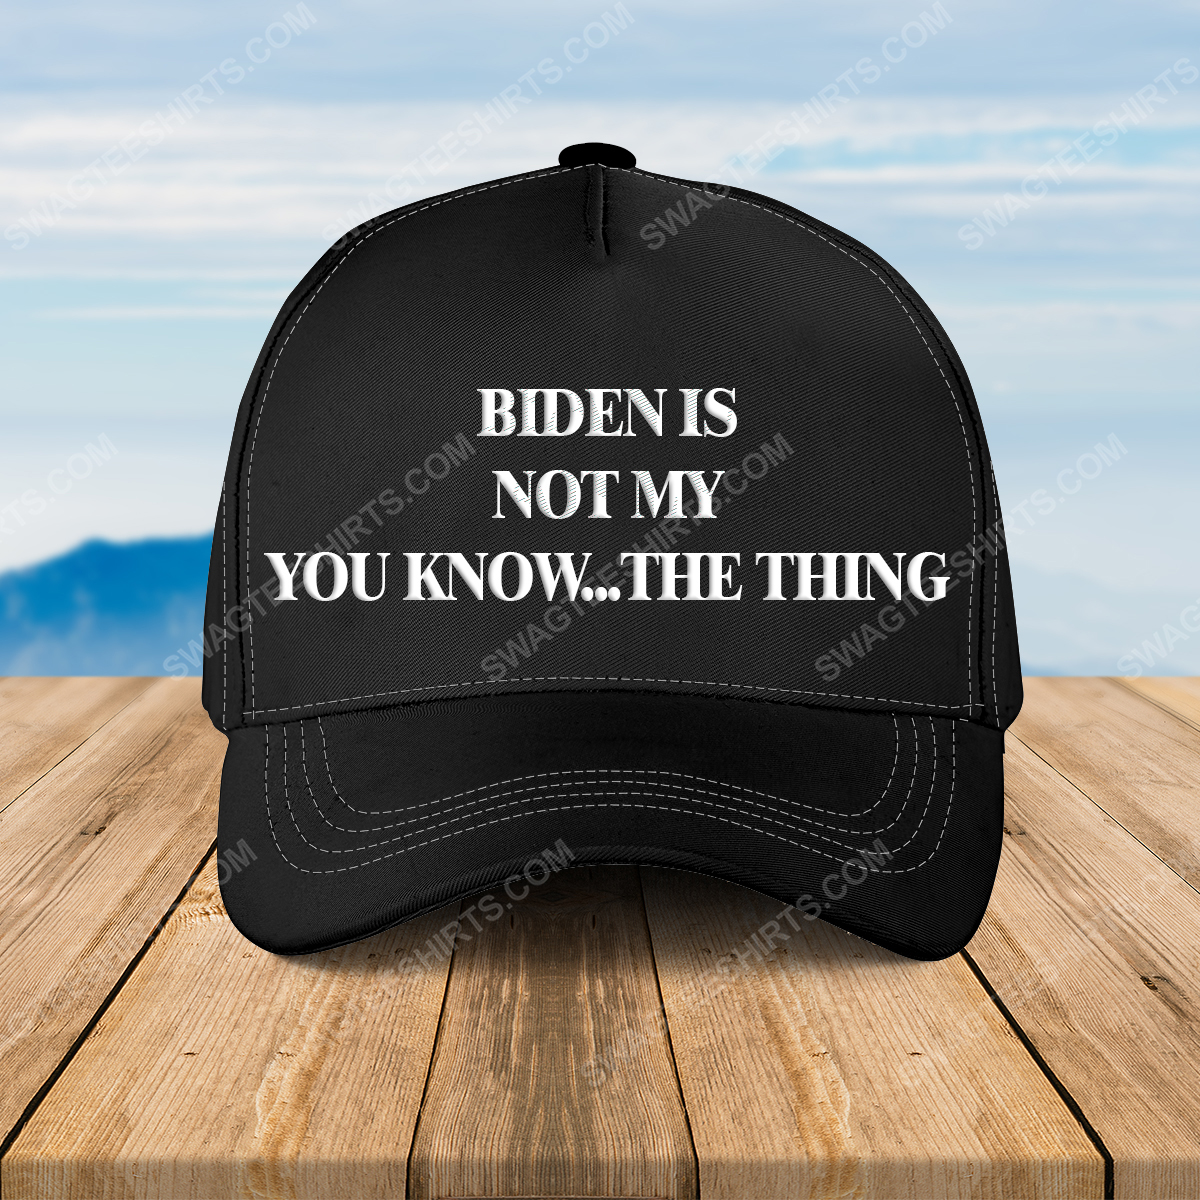 Biden is not my you know the thing full print classic hat 1 - Copy (2)